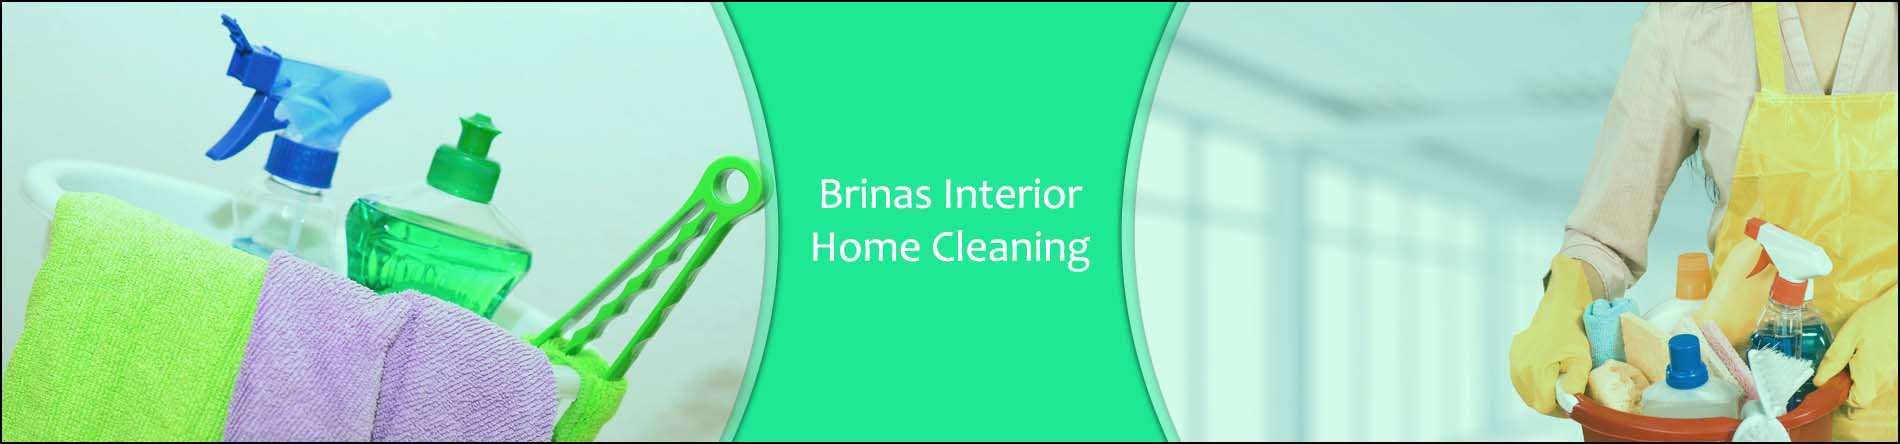 Brinas Interior Home Cleaning Is A Home Cleaning Specialist In